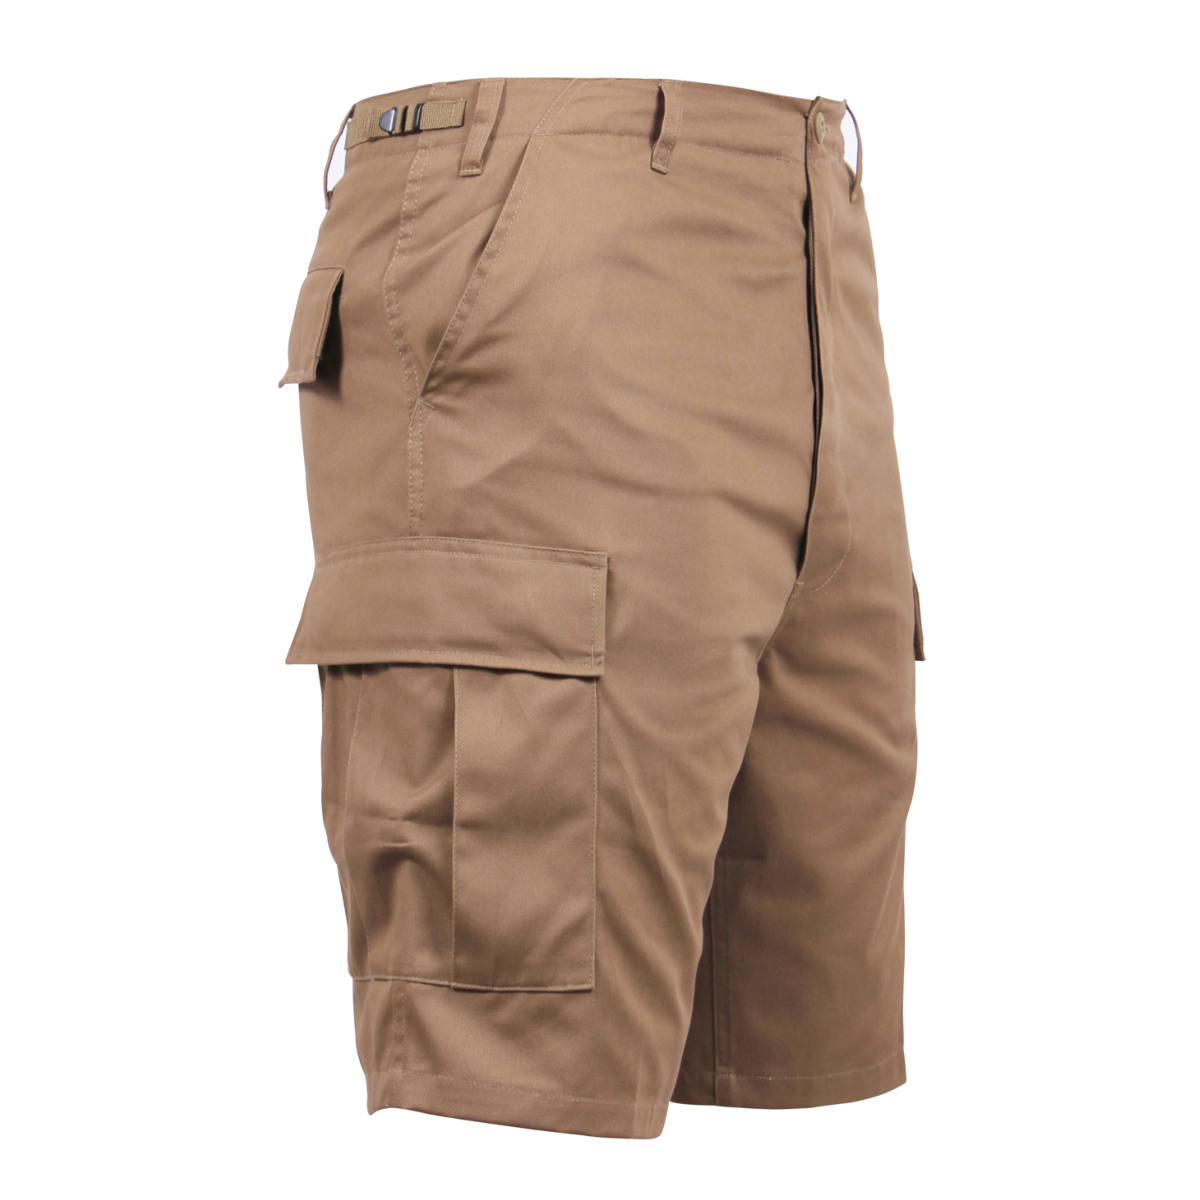 Rothco Military Style BDU Shorts, Coyote Brown at Sears.com